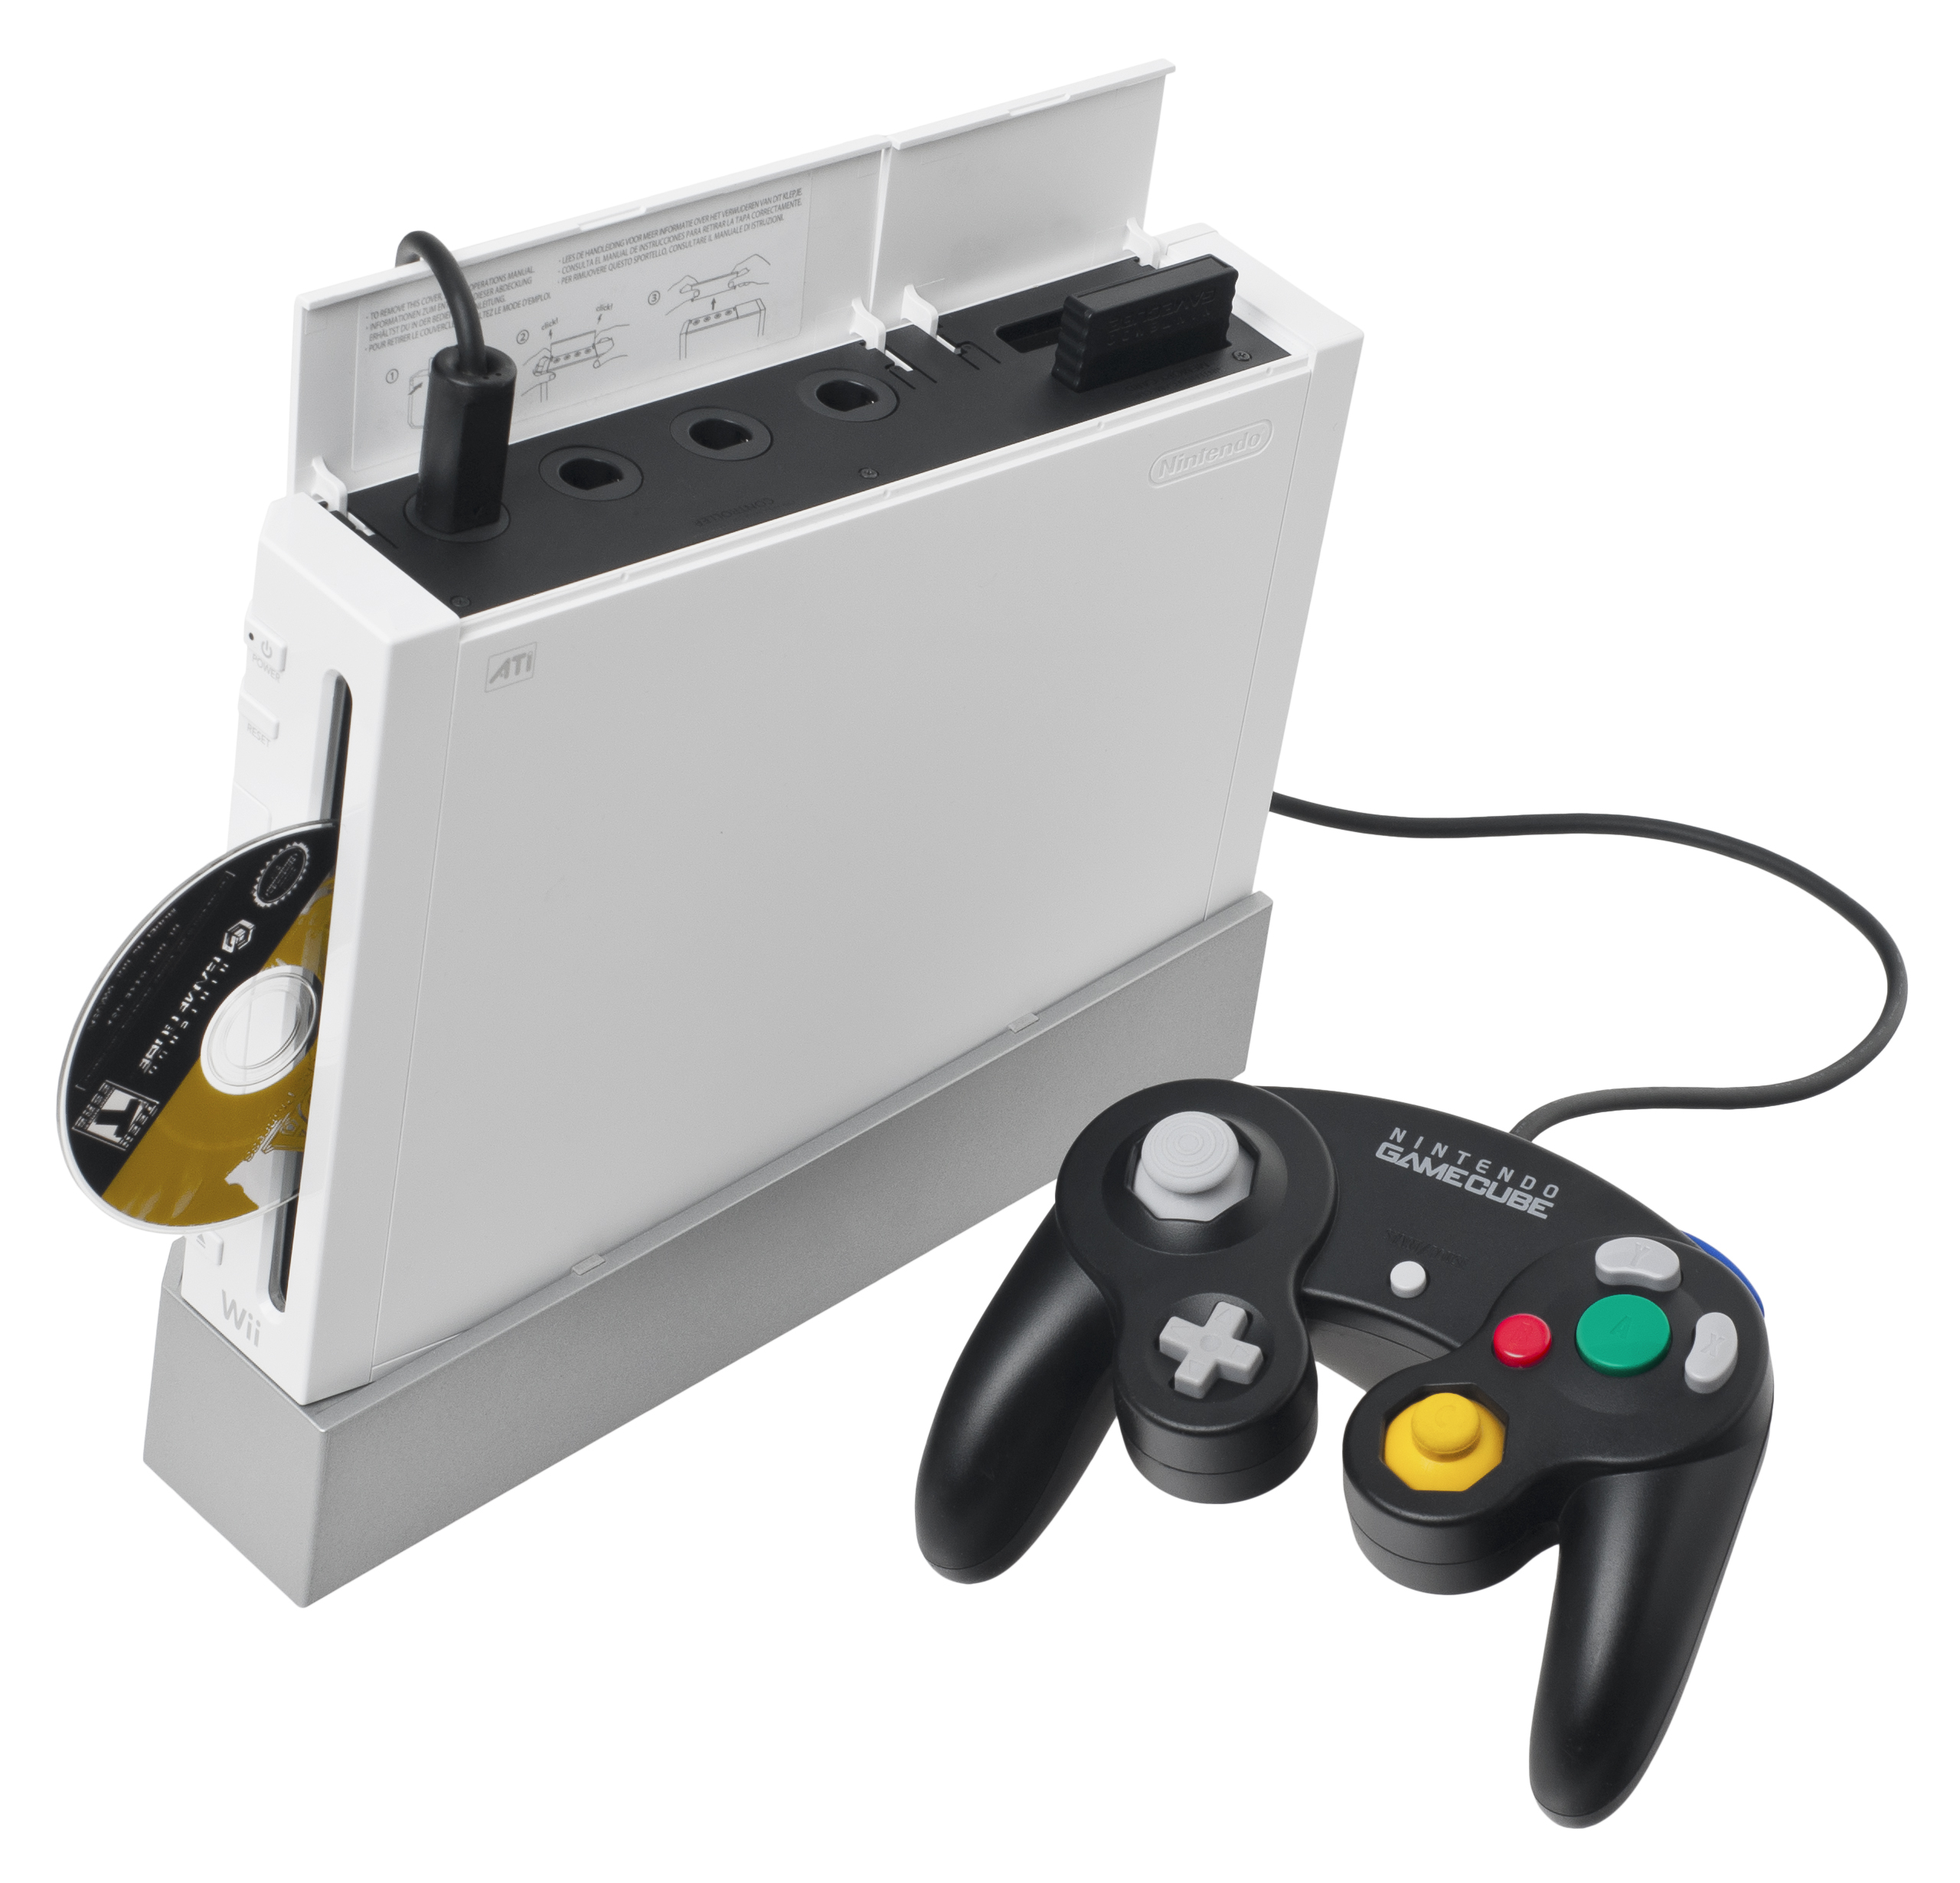 Wii-gamecube-compatibility.jpg